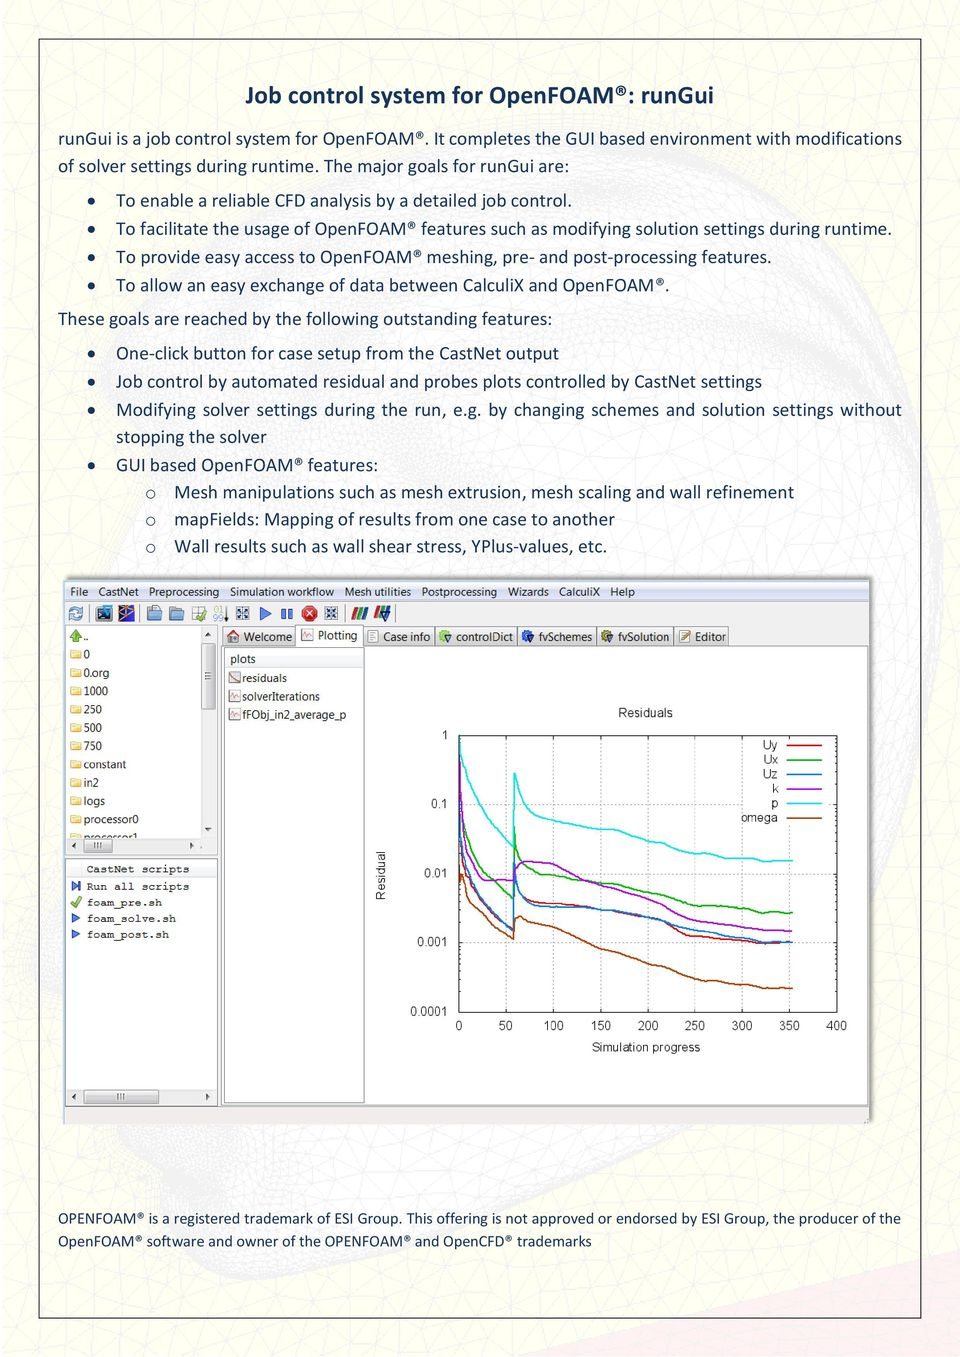 CastNet: Modelling platform for open source solver technology - PDF